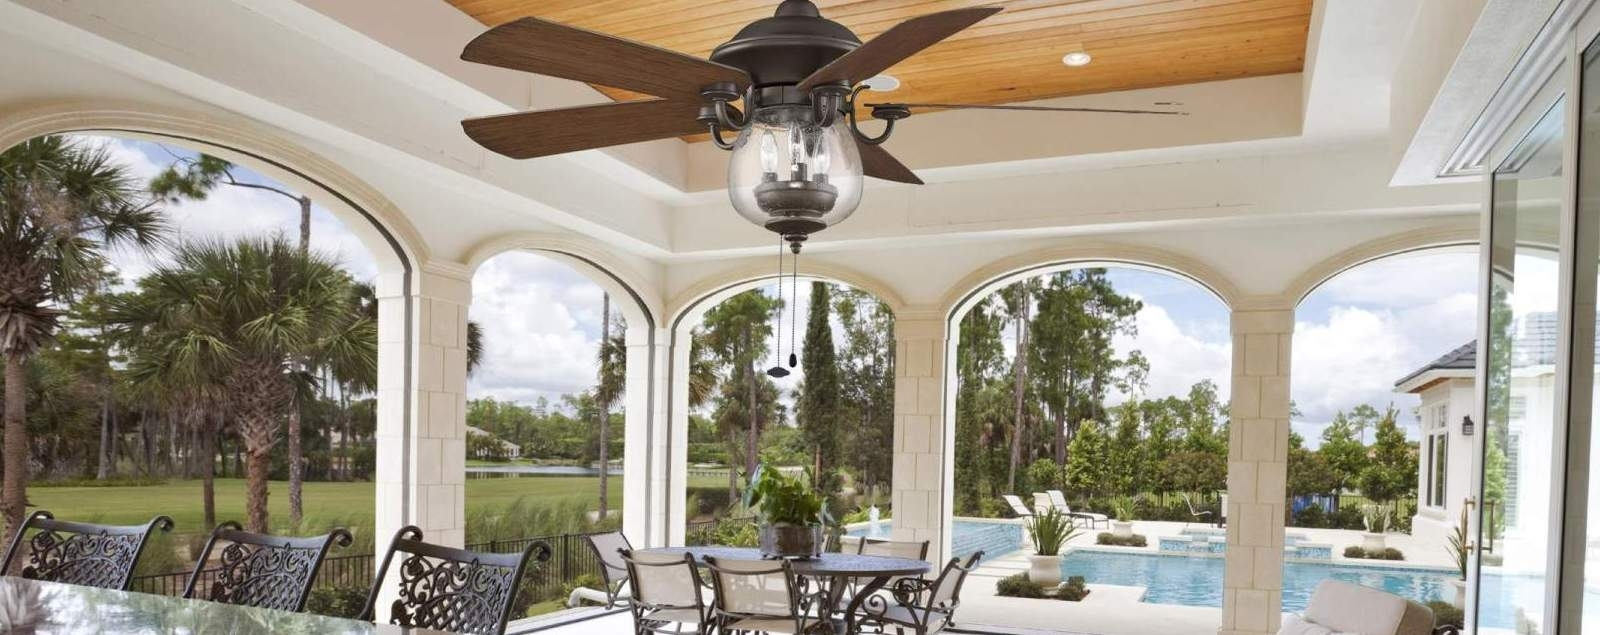 2018 High Output Outdoor Ceiling Fans Throughout Outdoor Ceiling Fans – Shop Wet, Dry, And Damp Rated Outdoor Fans (View 1 of 20)